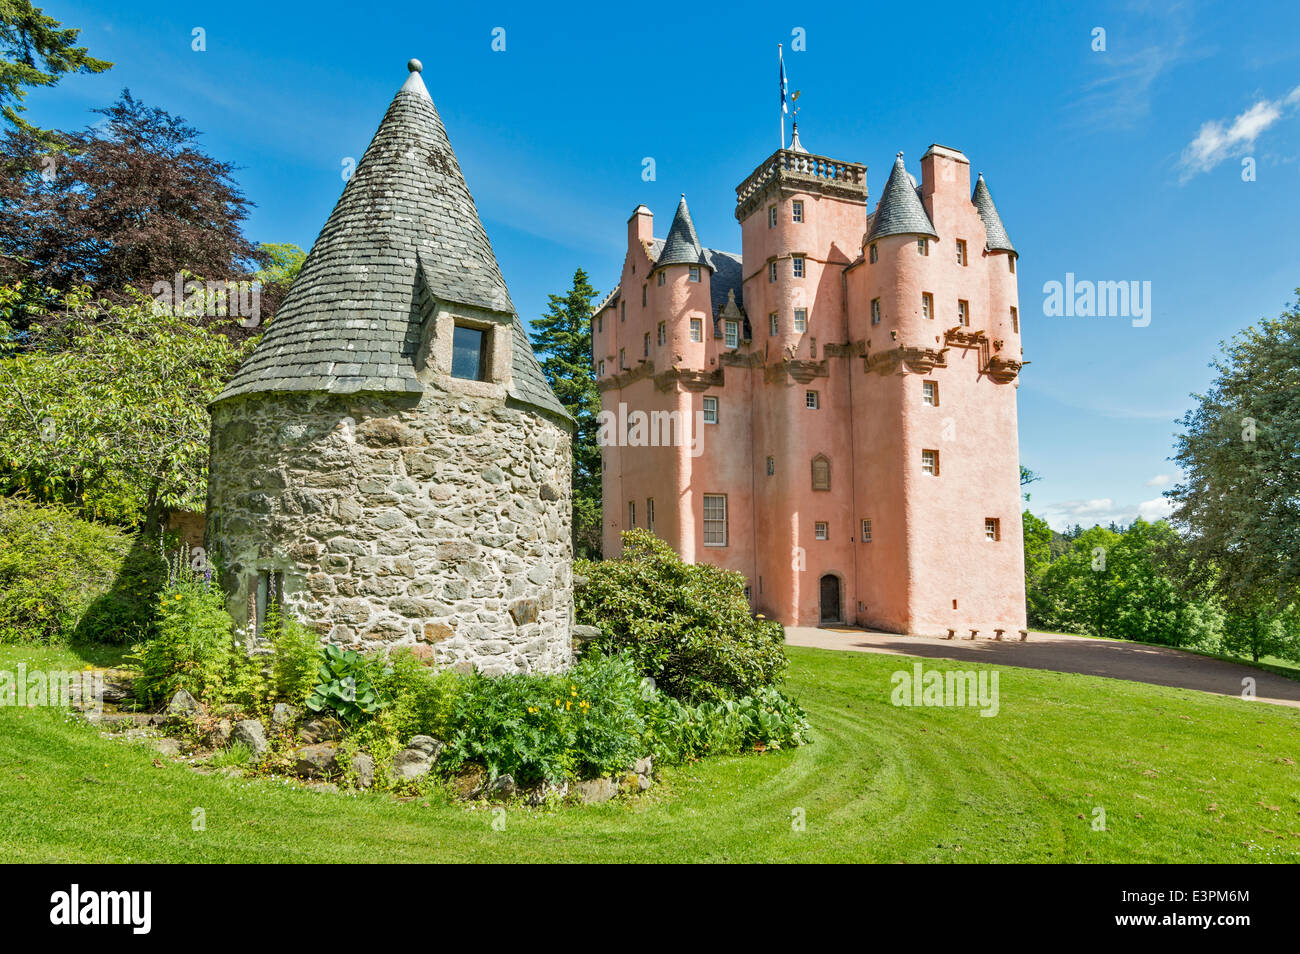 CRAIGIEVAR CASTLE AND OUTHOUSE IN SUMMER ABERDEENSHIRE SCOTLAND - Stock Image